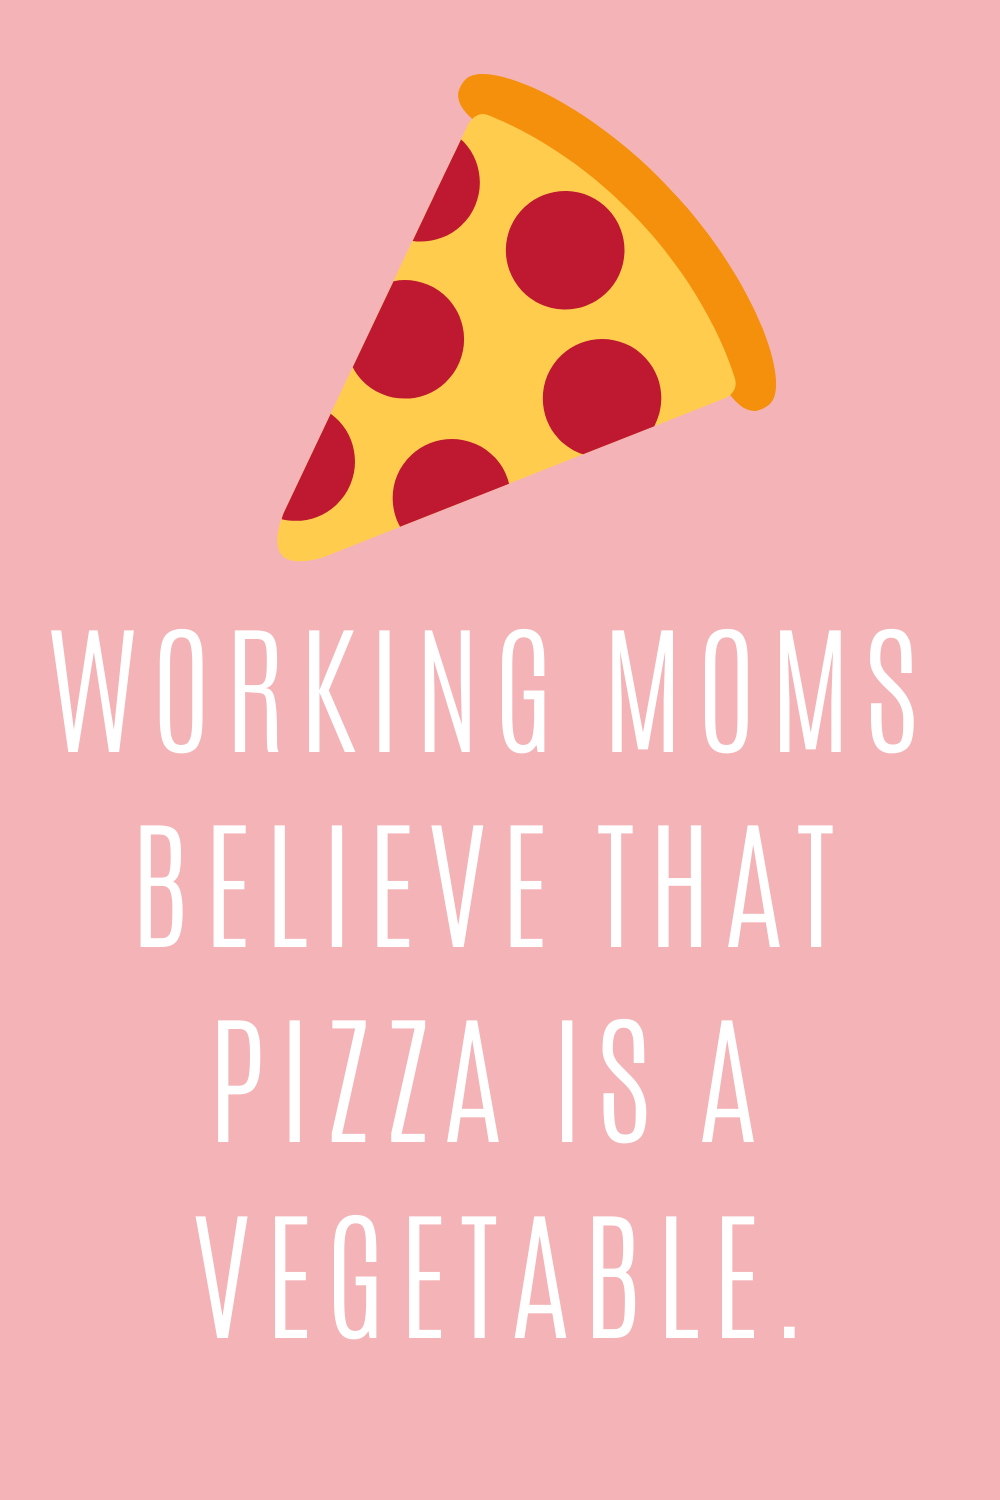 Funny Working Mom Quotes To Have It All & Make You Laugh